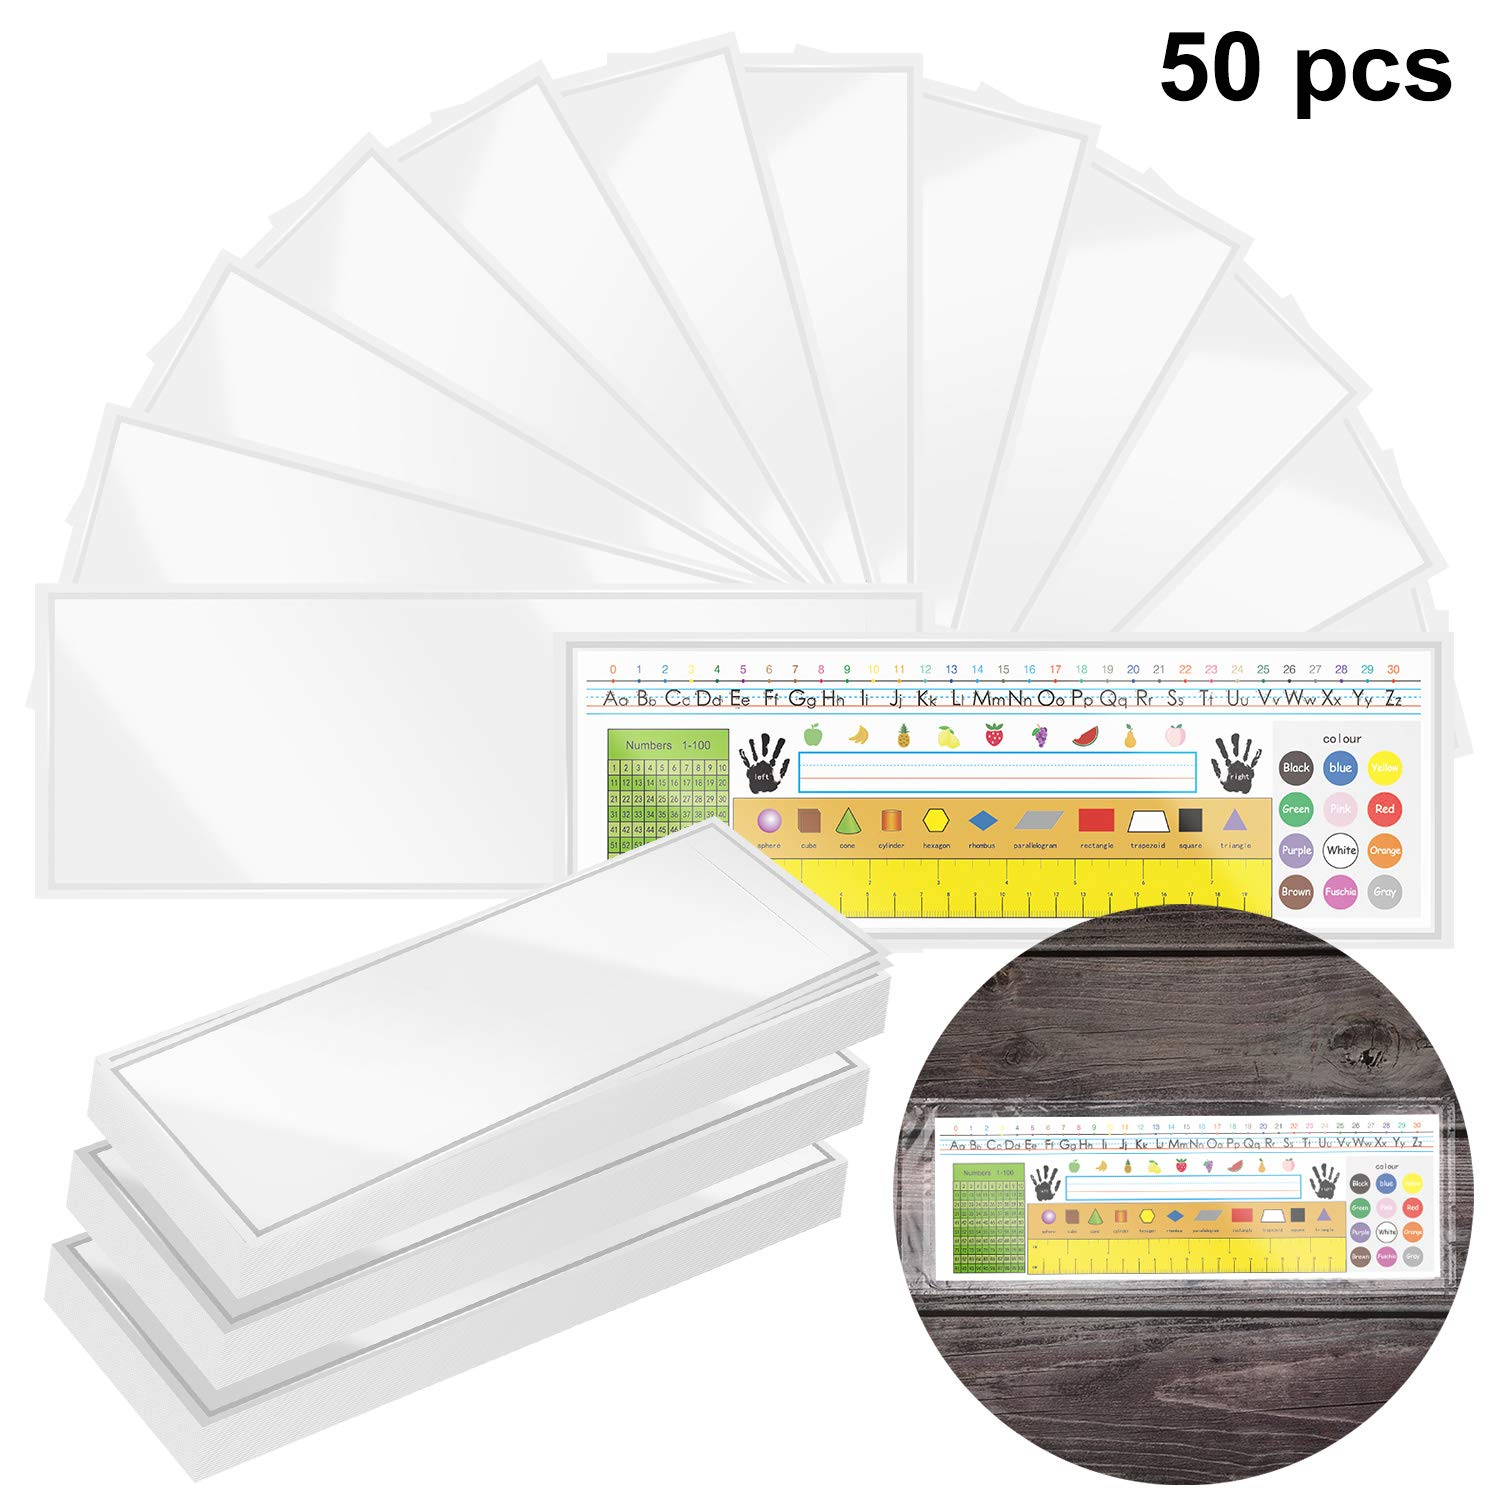 50 Pieces Nameplate Pocket Self-Adhesive Desk Name Tag Pocket Clear Adhesive Pockets for Classroom Office, 13.4 x 4.7 Inch by Outus